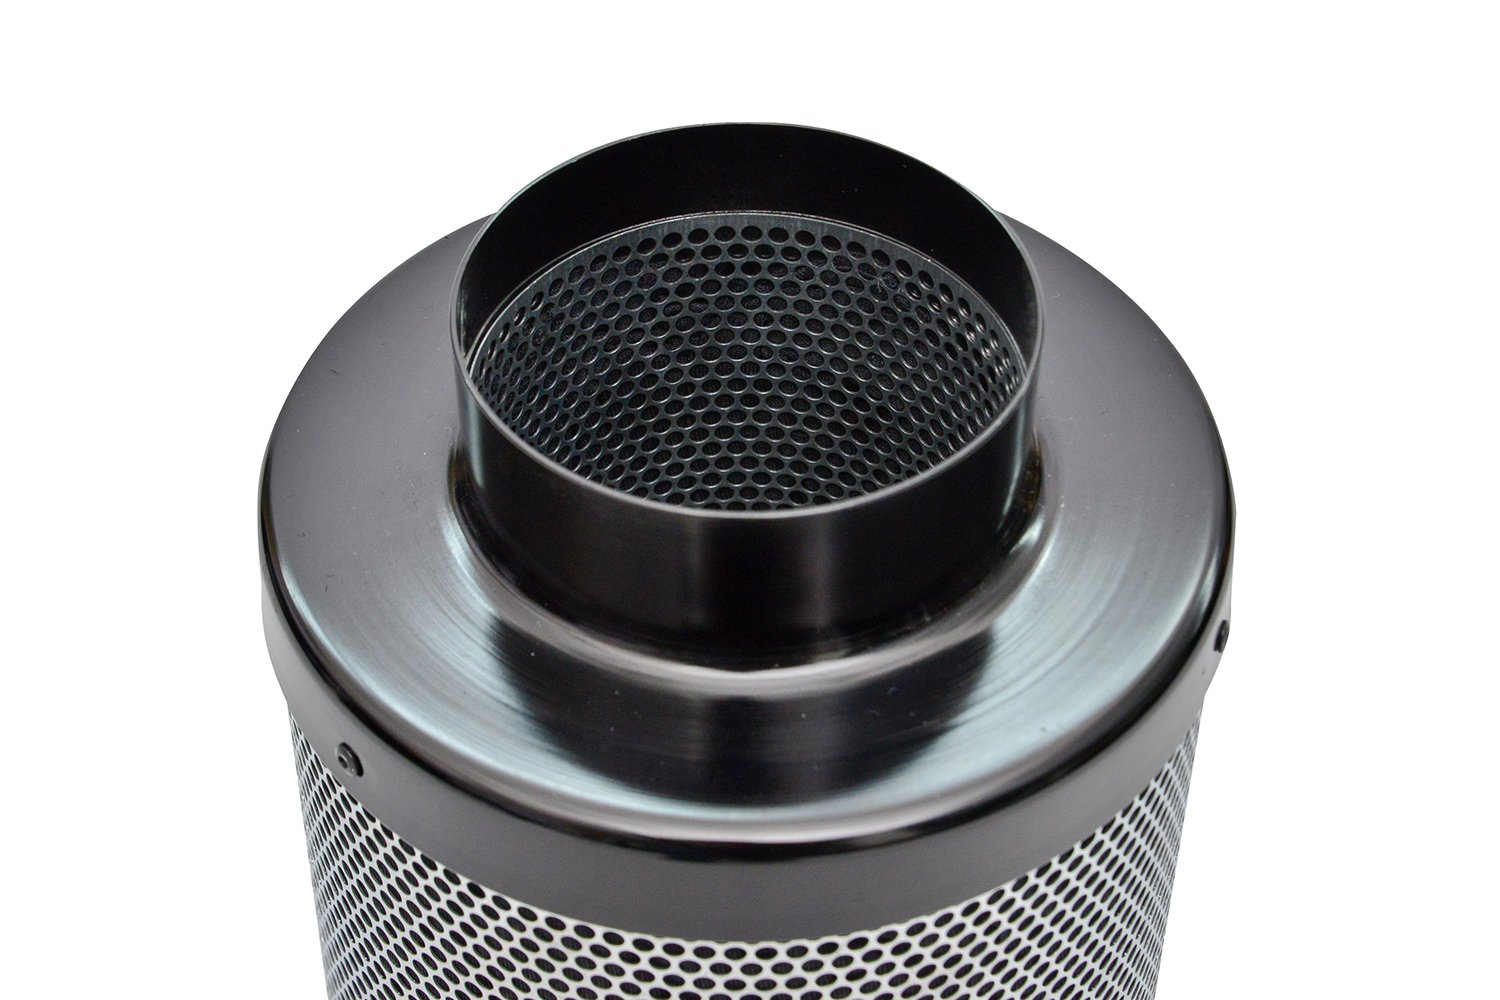 BuyHive 4 inch Inline Duct Fan with 4 Air Carbon Filter For Greenhouse Ventilation Hydroponic Grow Tent Kit